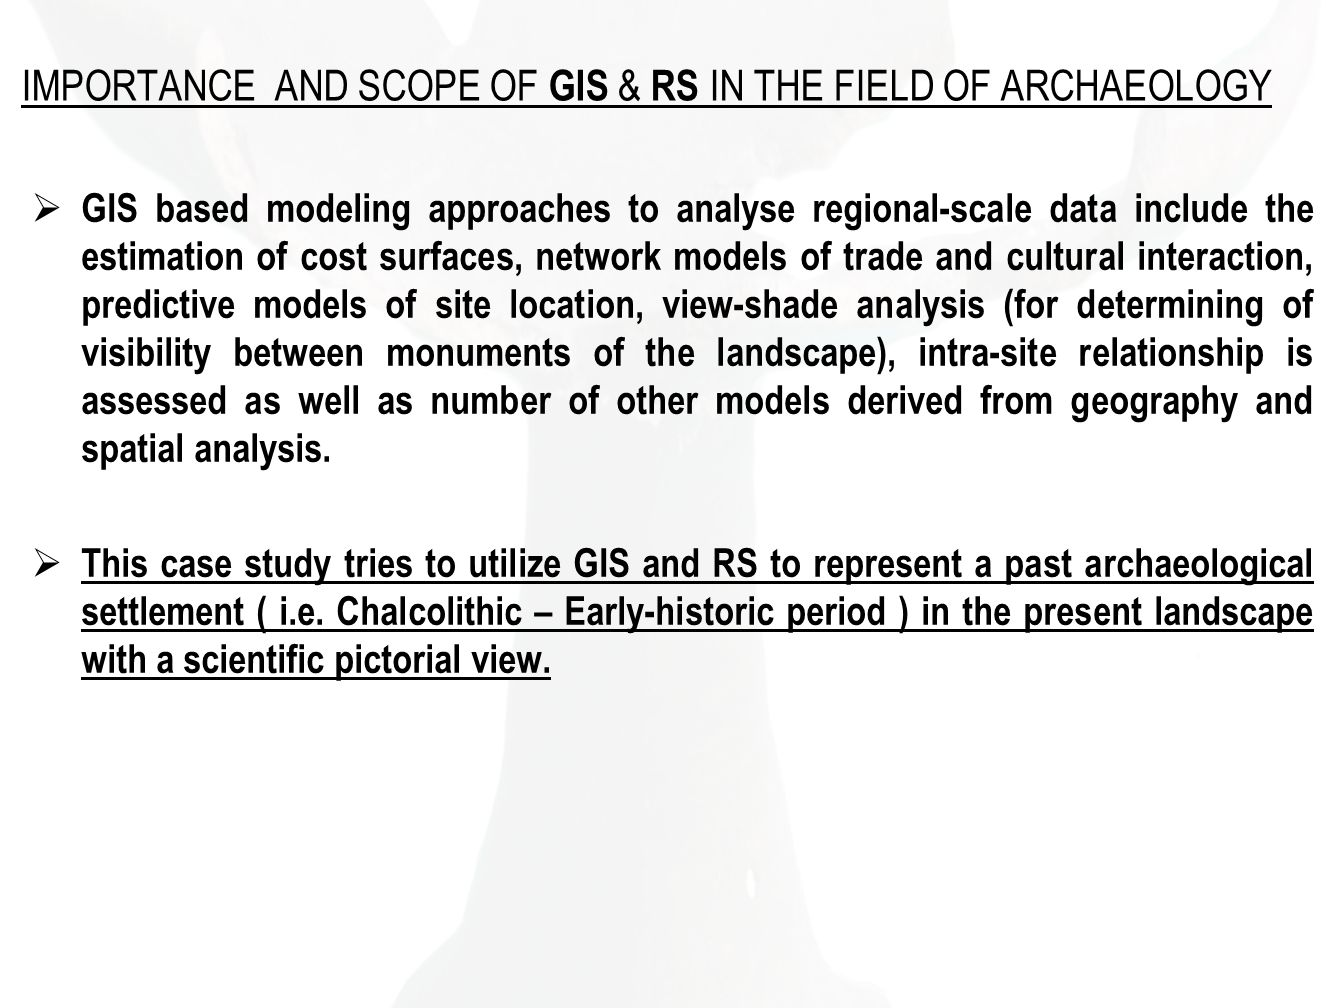 IMPORTANCE AND SCOPE OF GIS & RS IN THE FIELD OF ARCHAEOLOGY GIS based modeling approaches to analyse regional-scale data include the estimation of cost surfaces, network models of trade and cultural interaction, predictive models of site location, view-shade analysis (for determining of visibility between monuments of the landscape), intra-site relationship is assessed as well as number of other models derived from geography and spatial analysis.